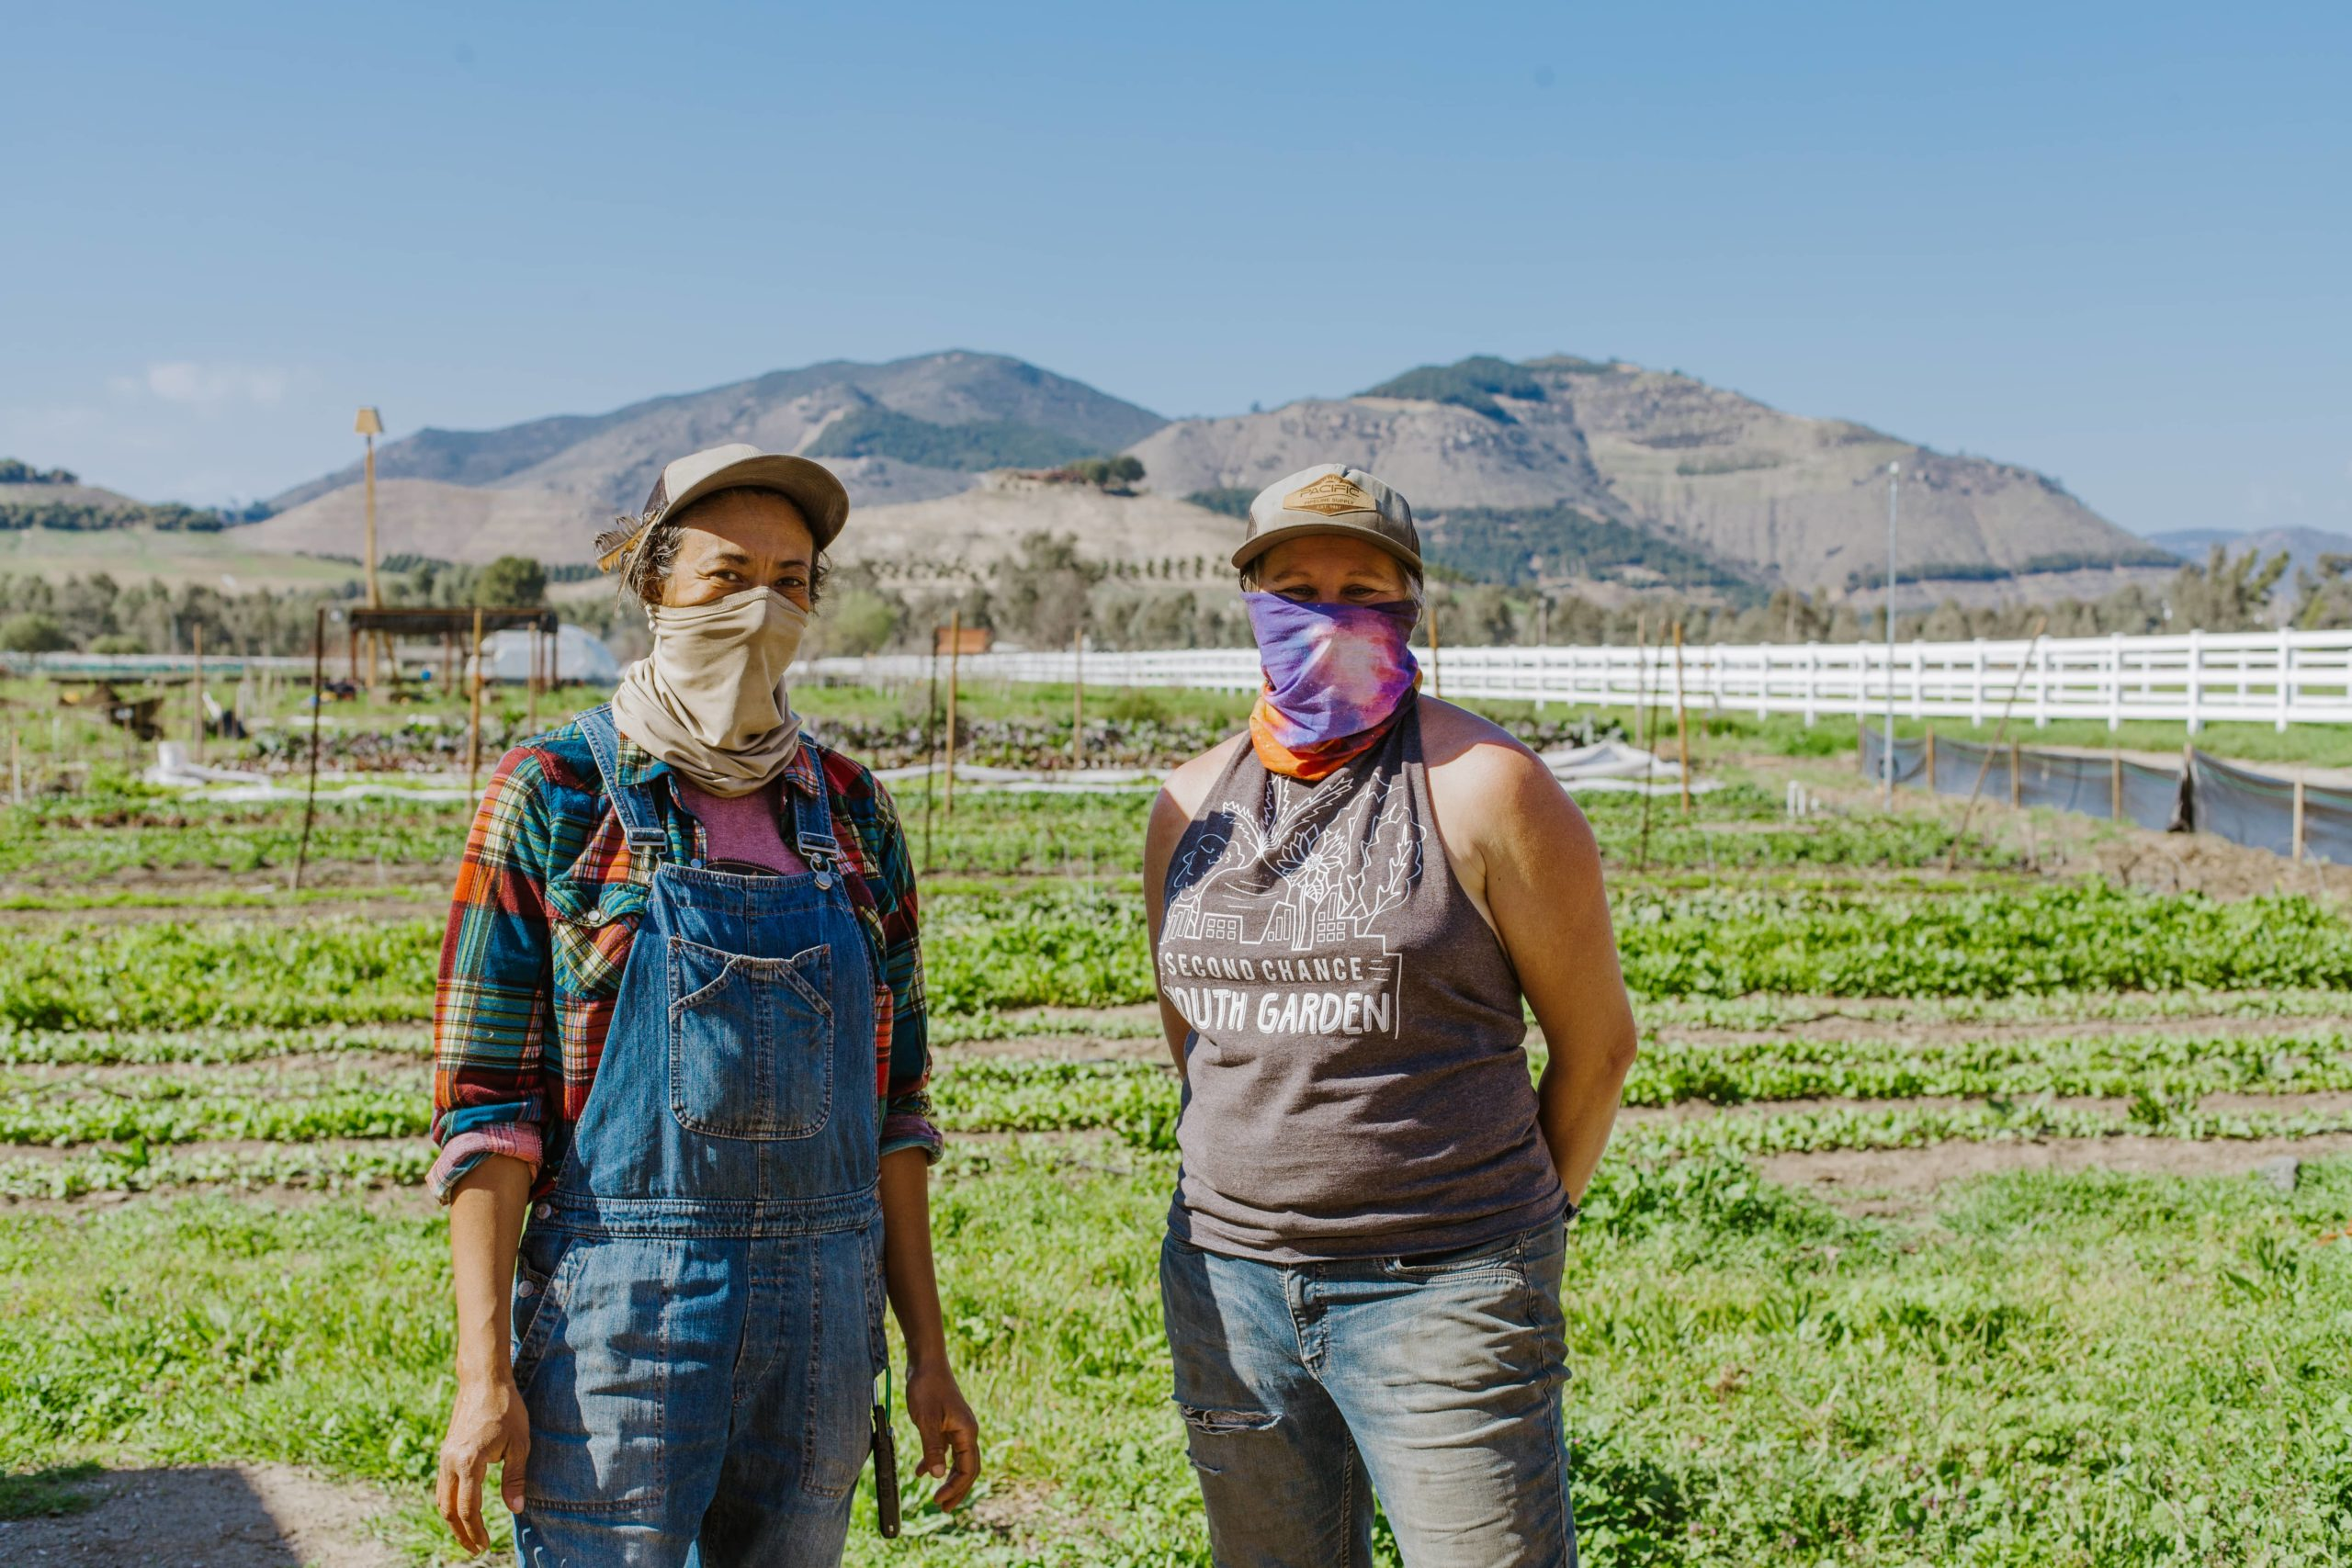 Two women standing on a farm with some hills on the background